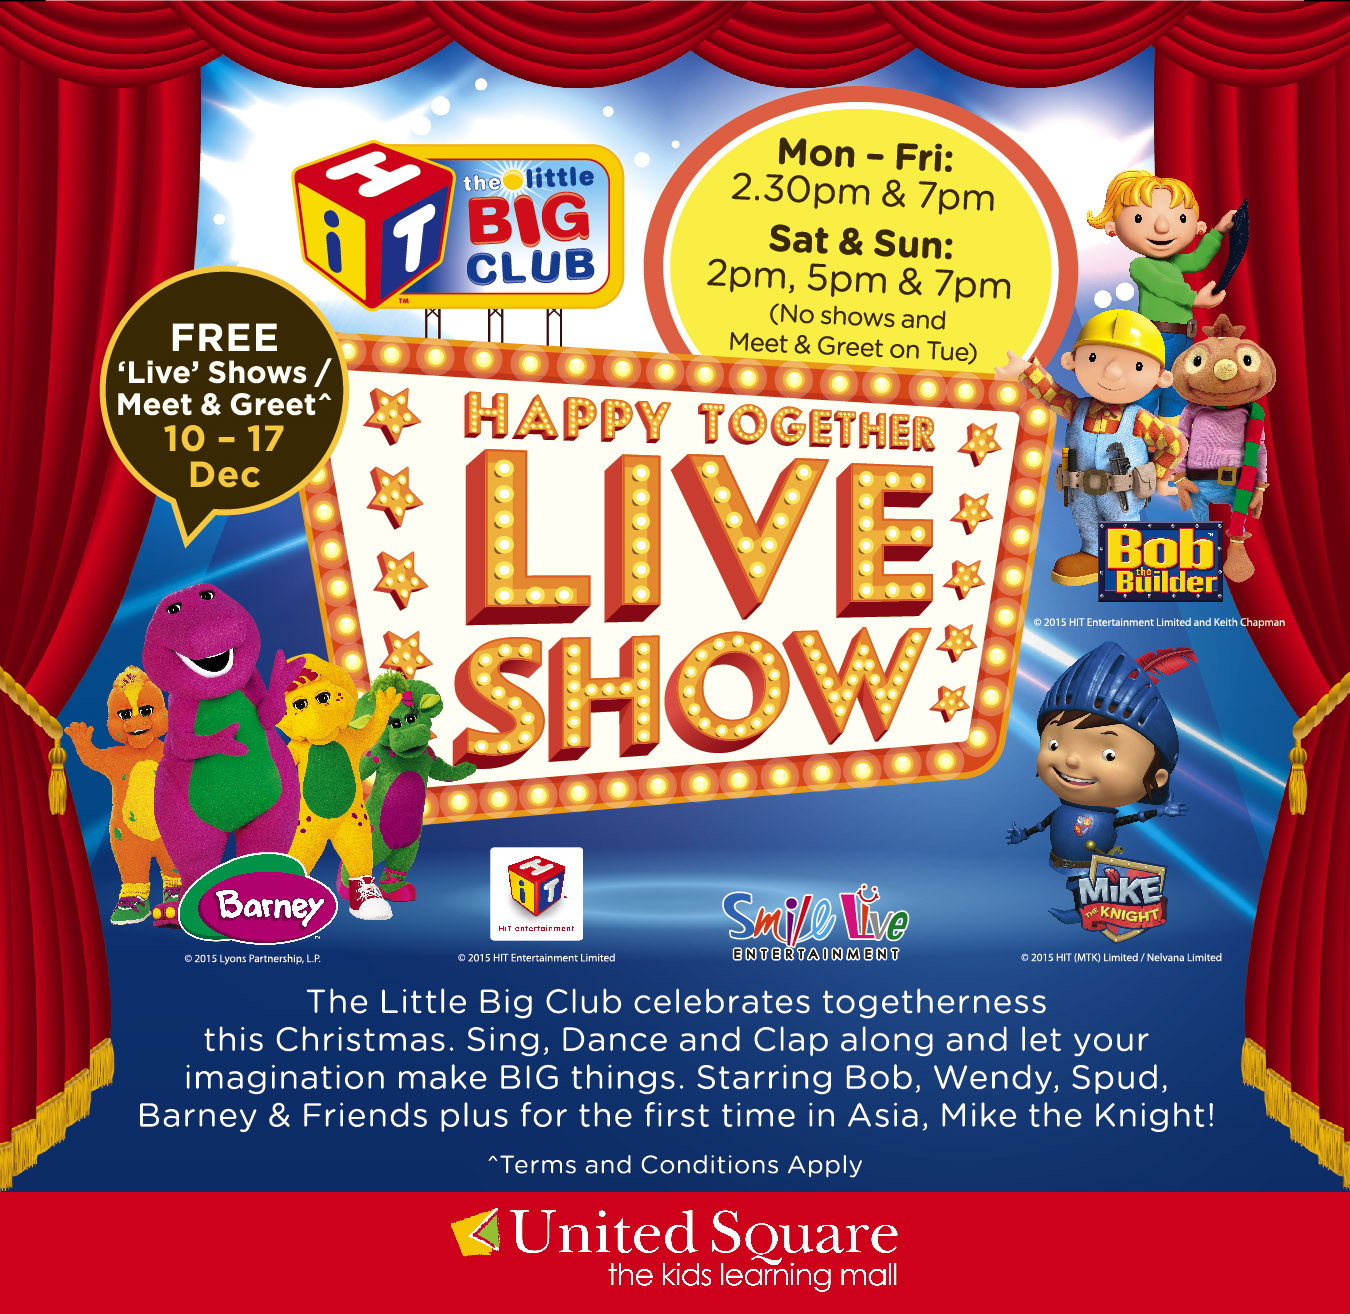 Bj Promotions Craft Shows